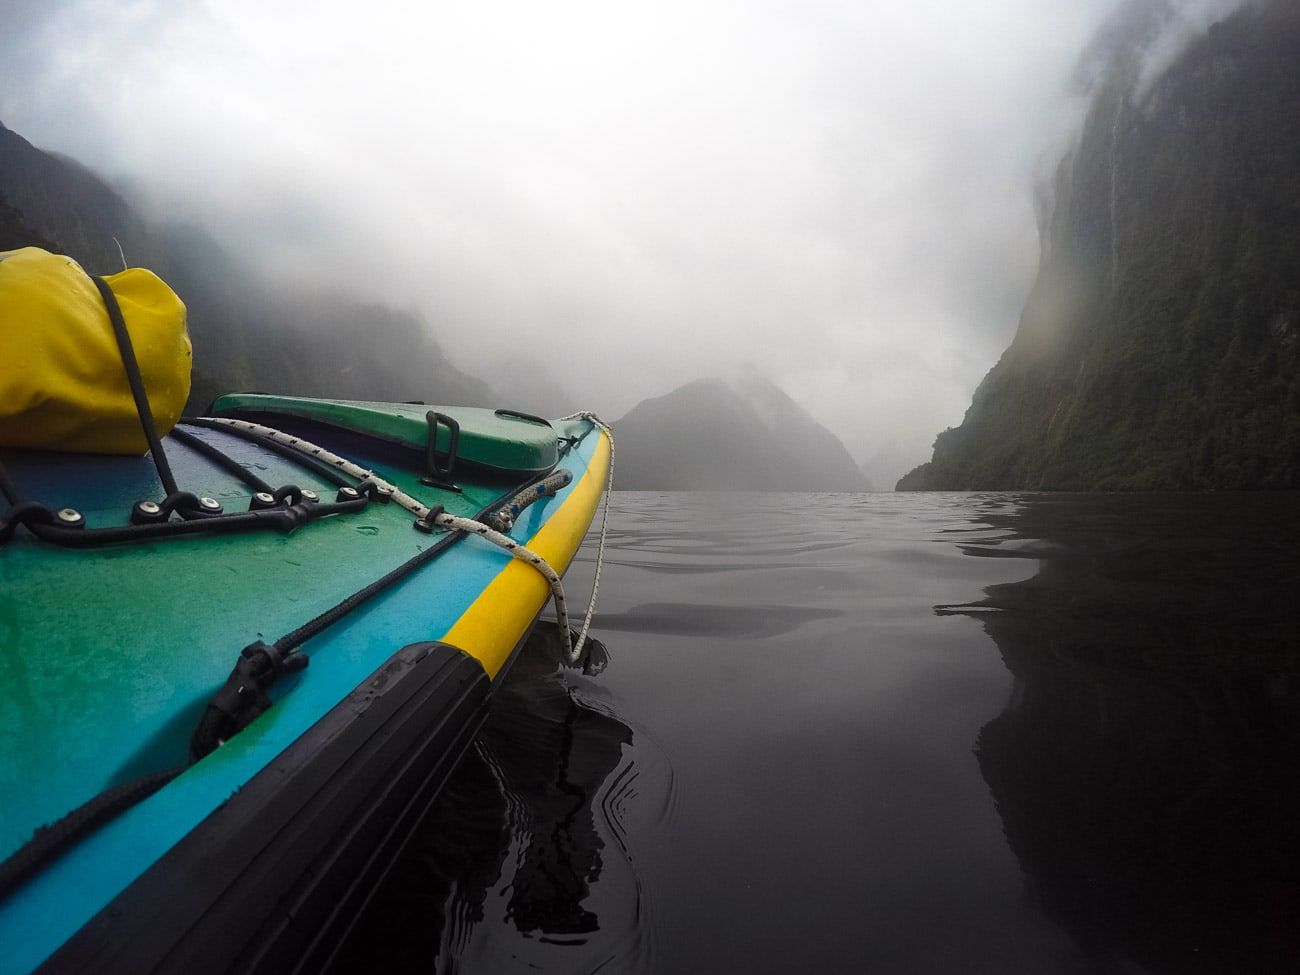 Experimenting with perspective by holding the GoPro low to the water in New Zealand's Doubtful Sound // Learn my favorite GoPro tips and tricks to improve your travel photography.